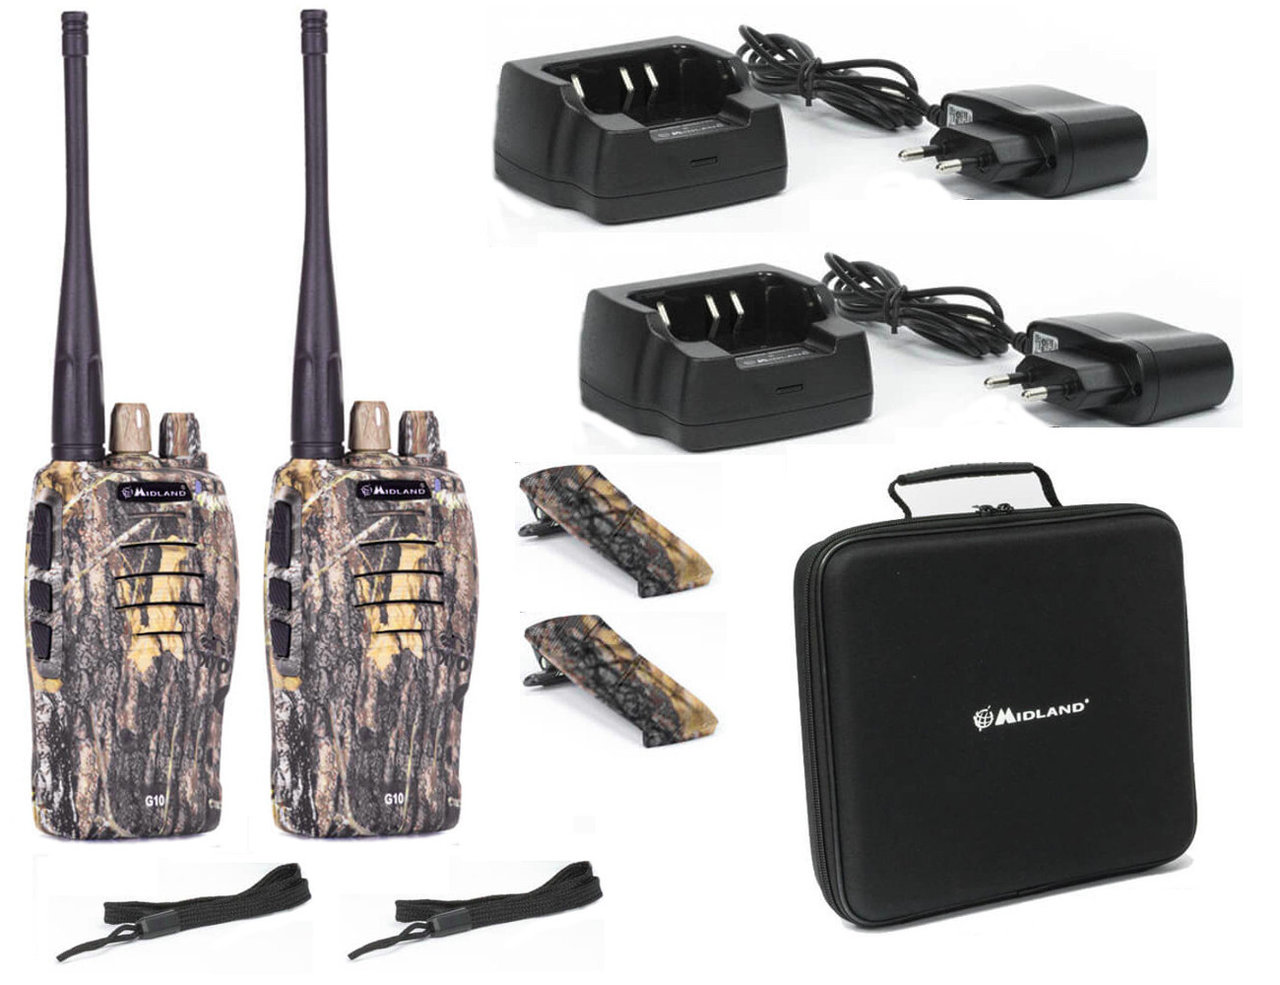 2 Walkie Talkies Midland G10 camuflaje